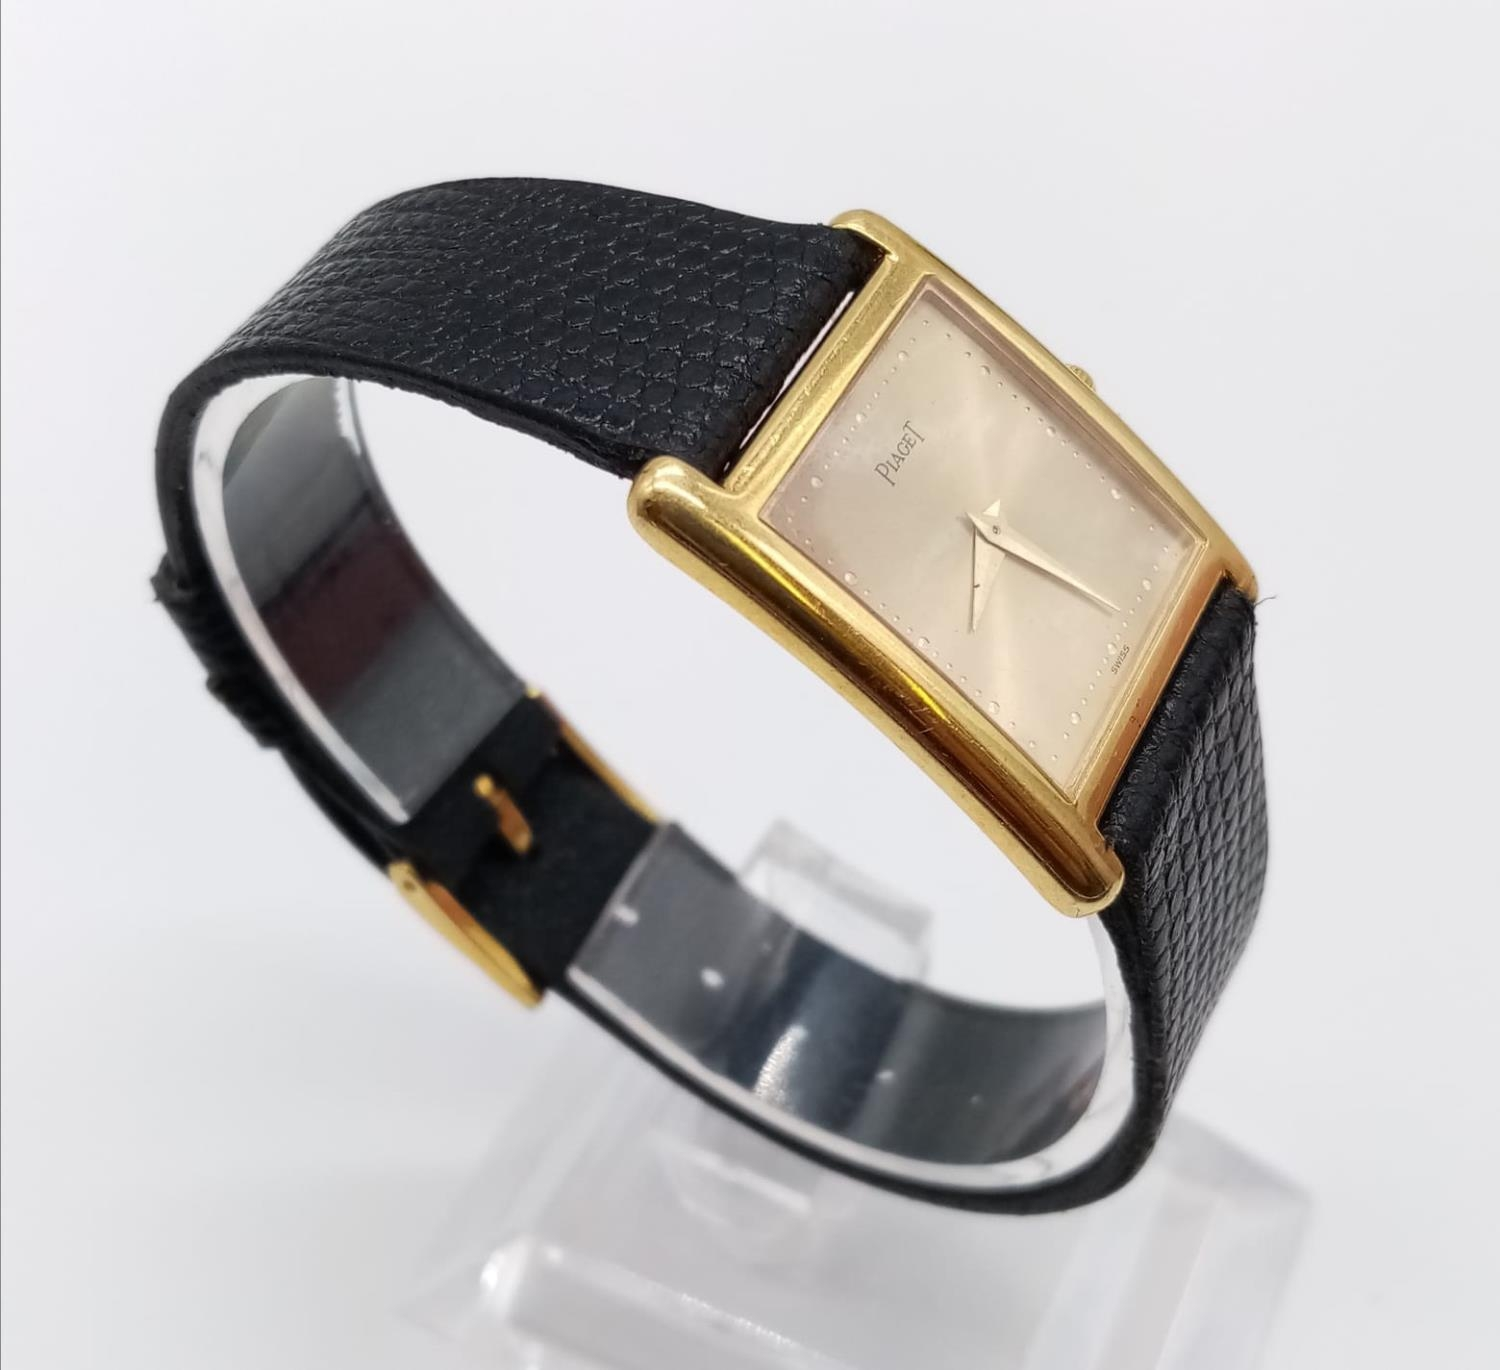 Vintage Plaget 18ct gold ladies watch with square face (22mm) and leather strap - Image 3 of 10